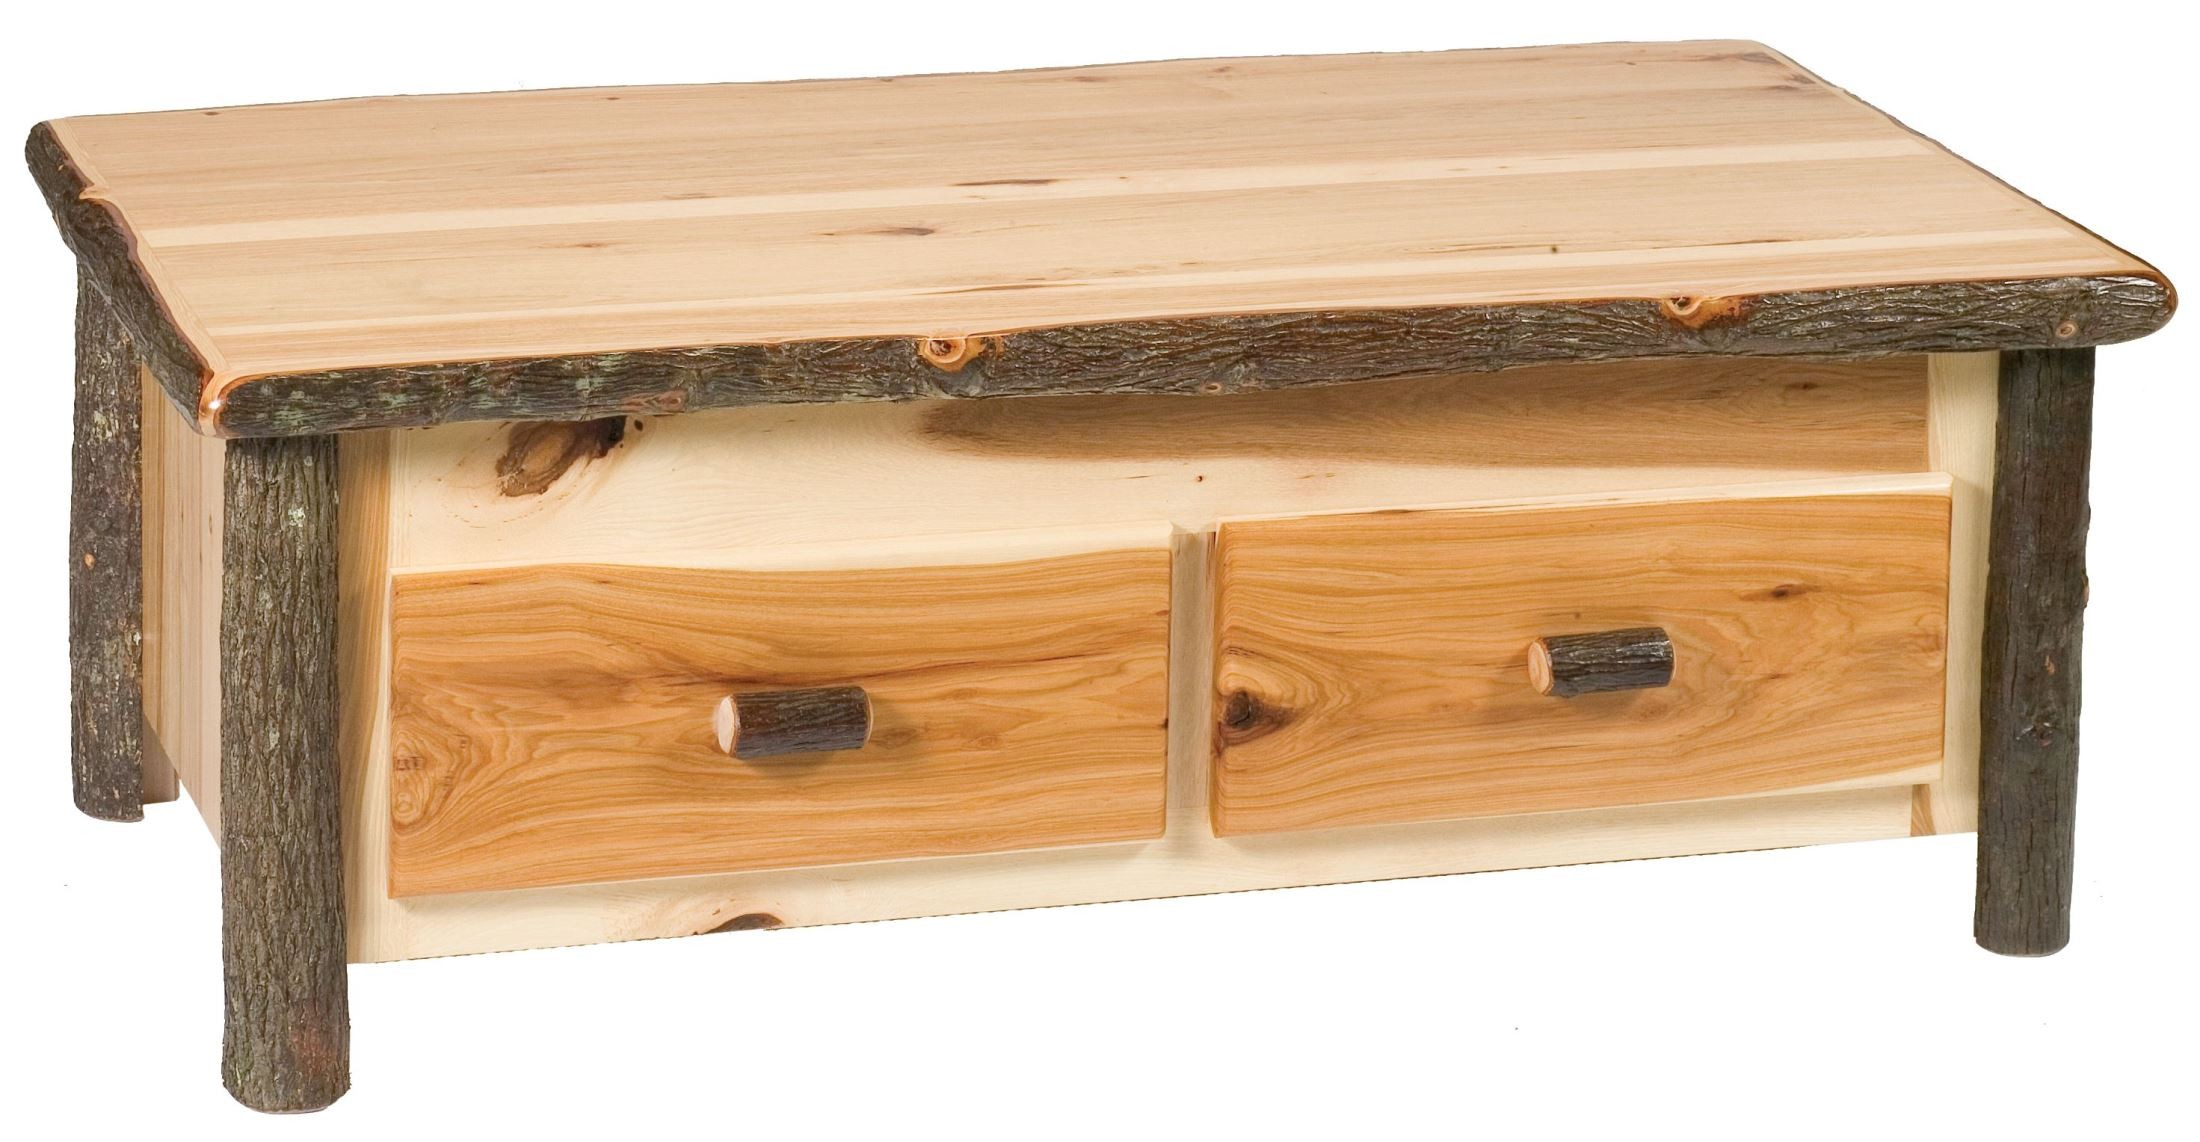 Hickory Enclosed Elevating Top Coffee Table From Fireside Lodge 84110 Coleman Furniture